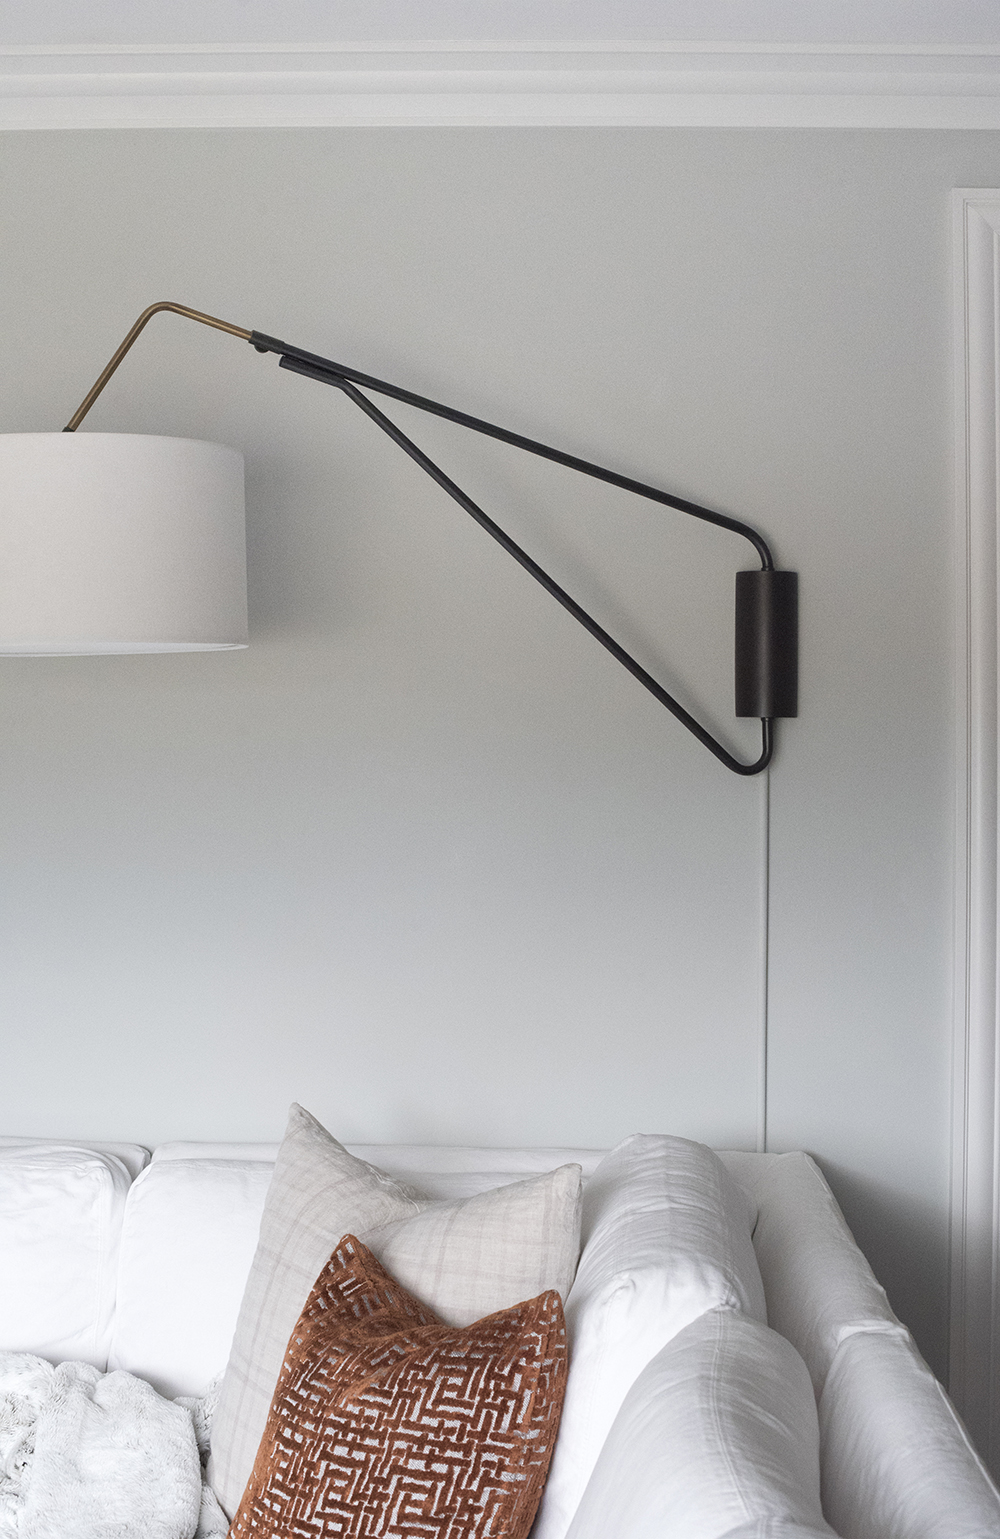 How To Hide Light Fixture Cords Room For Tuesday Wiring